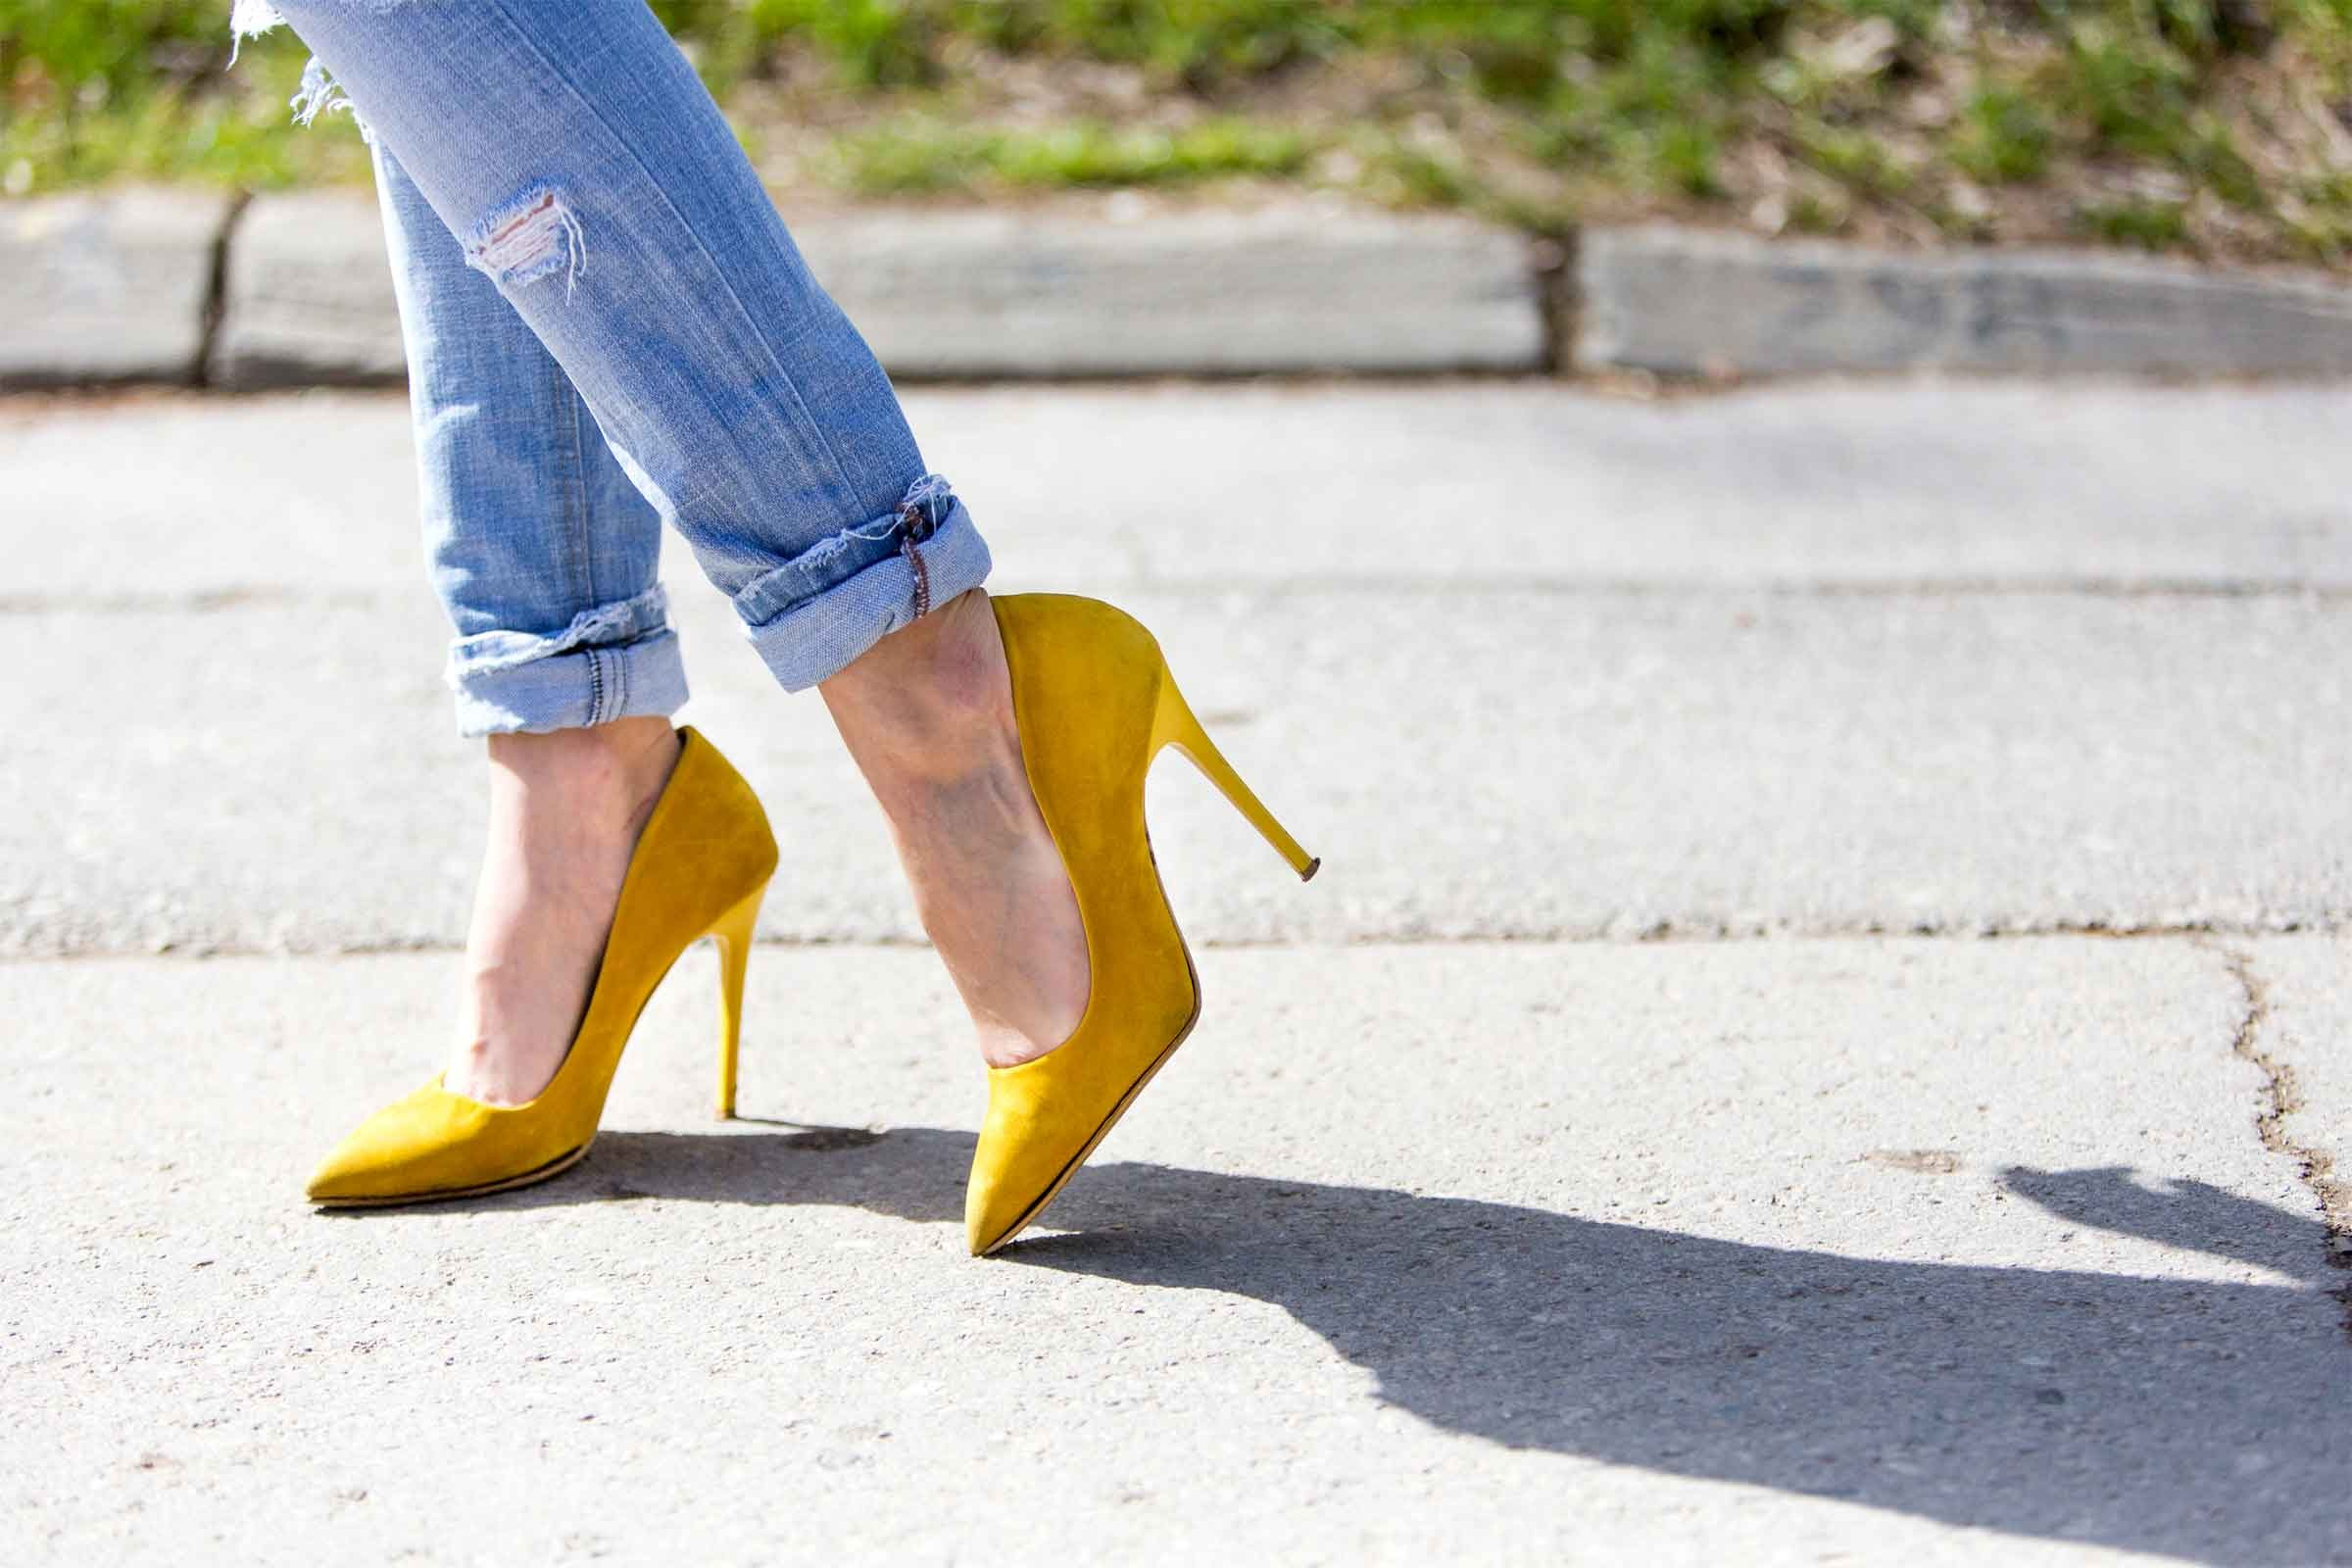 10 Ways To Rock Heels Without Getting Foot Pain Or Blisters